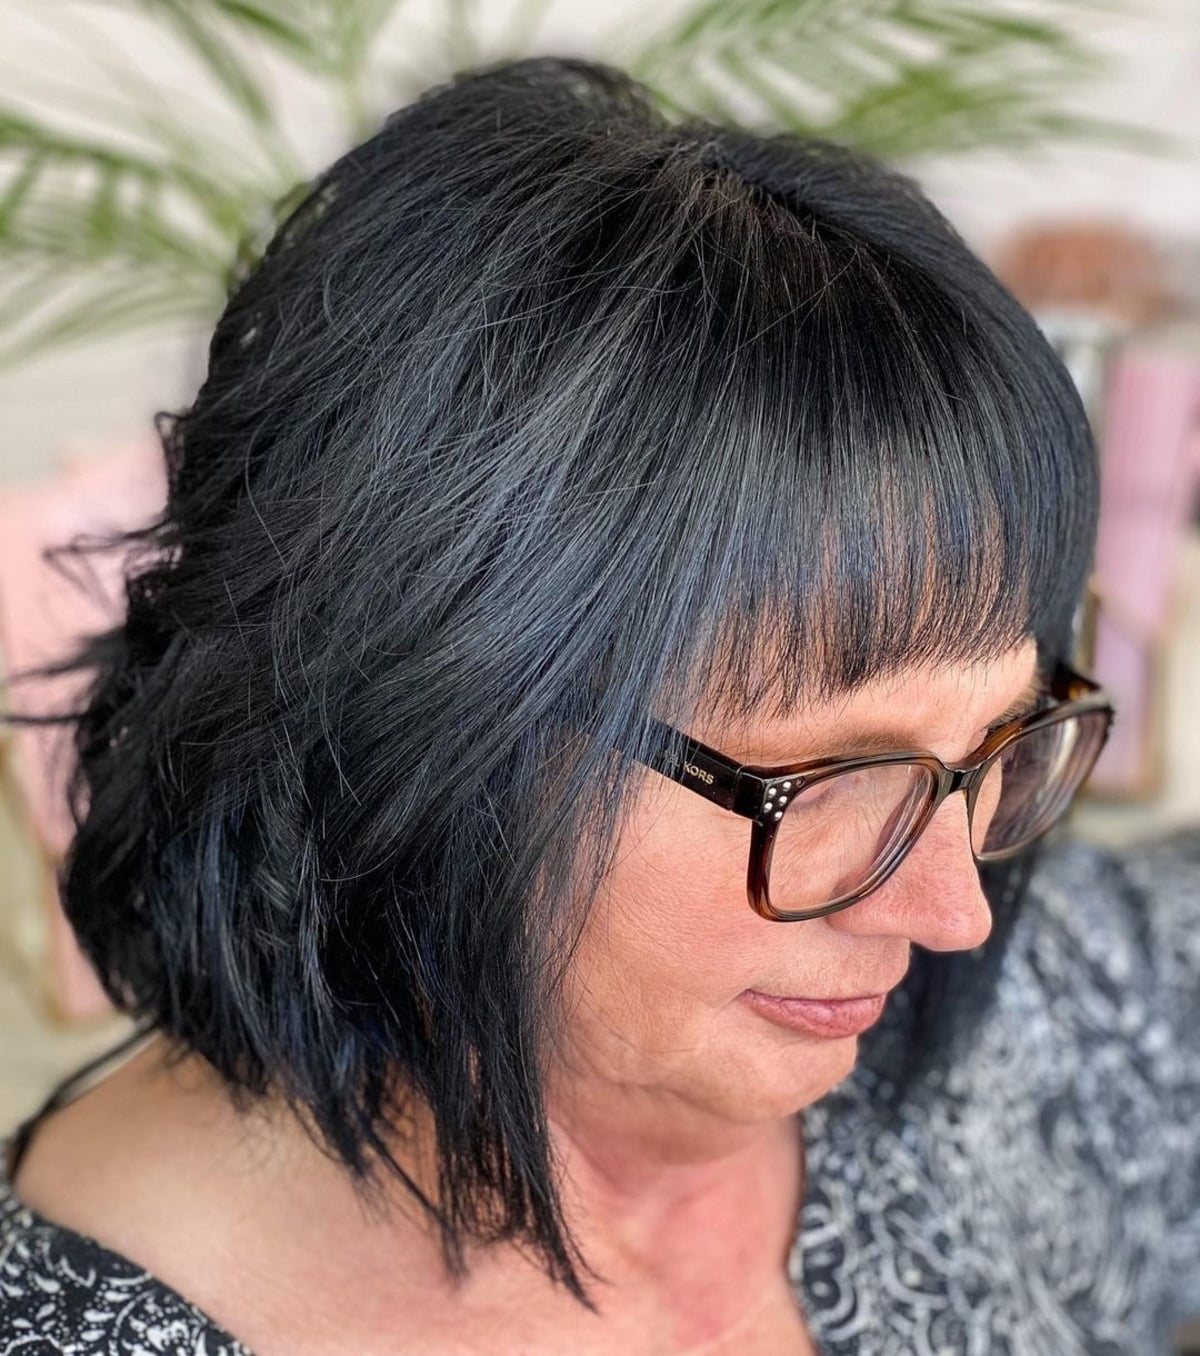 Layered bob for 60-year-old women with glasses